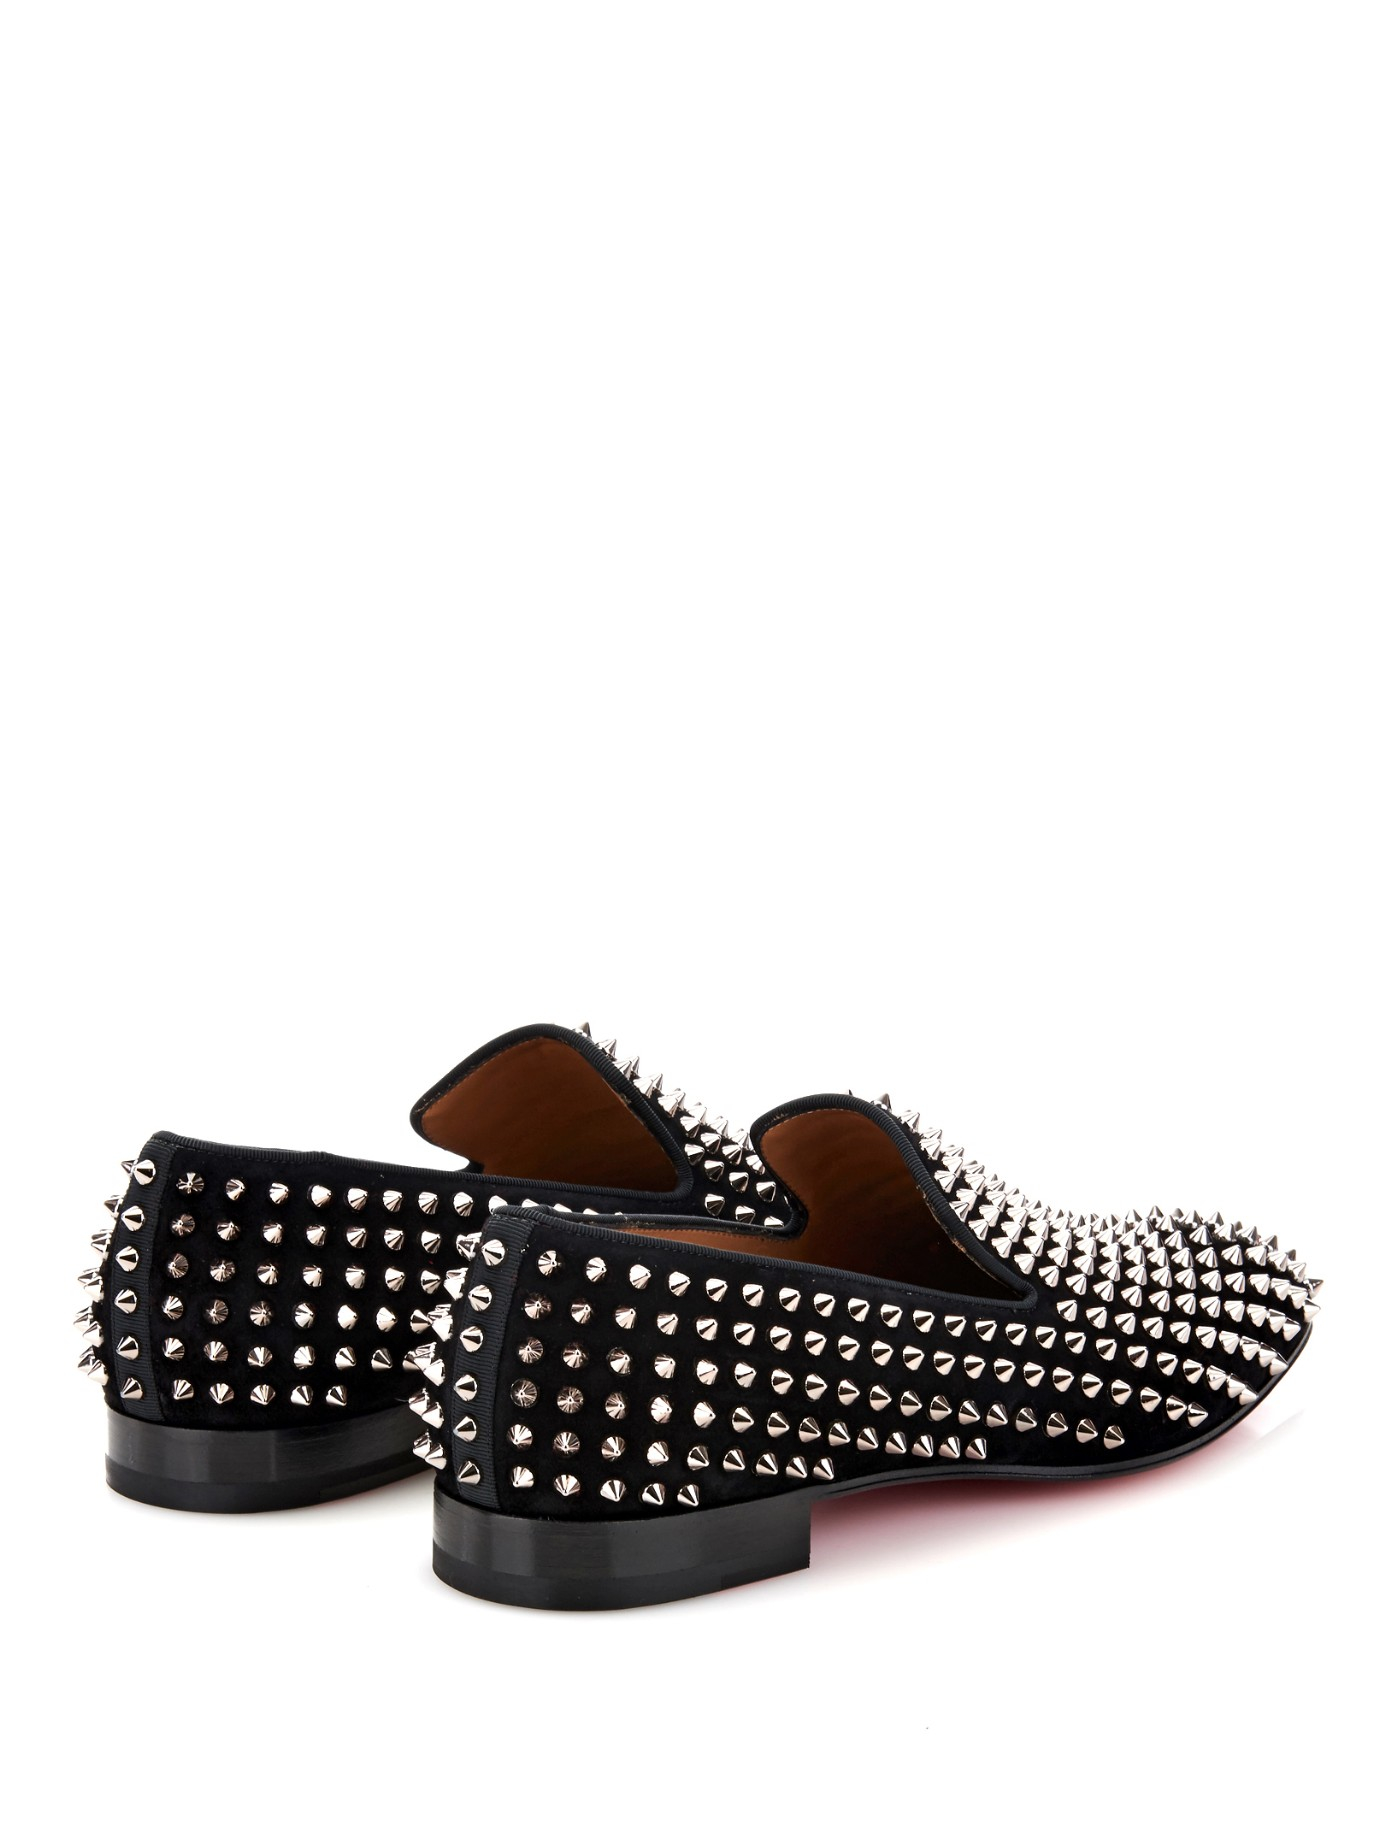 317a7208cc21 Christian Louboutin Dandelion Studded Suede Loafers in Black for Men - Lyst